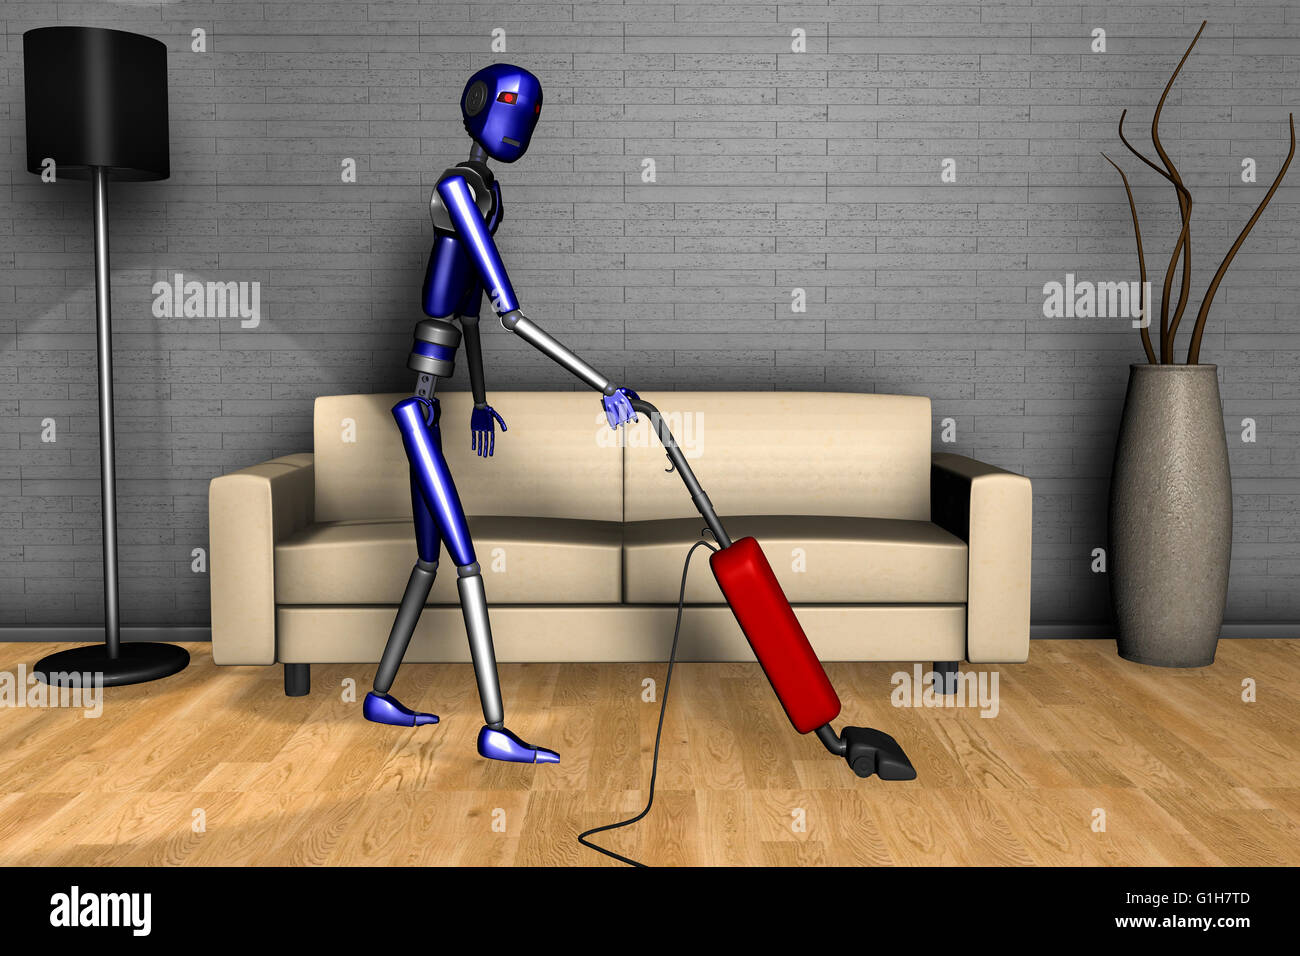 a robot of the future - Stock Image